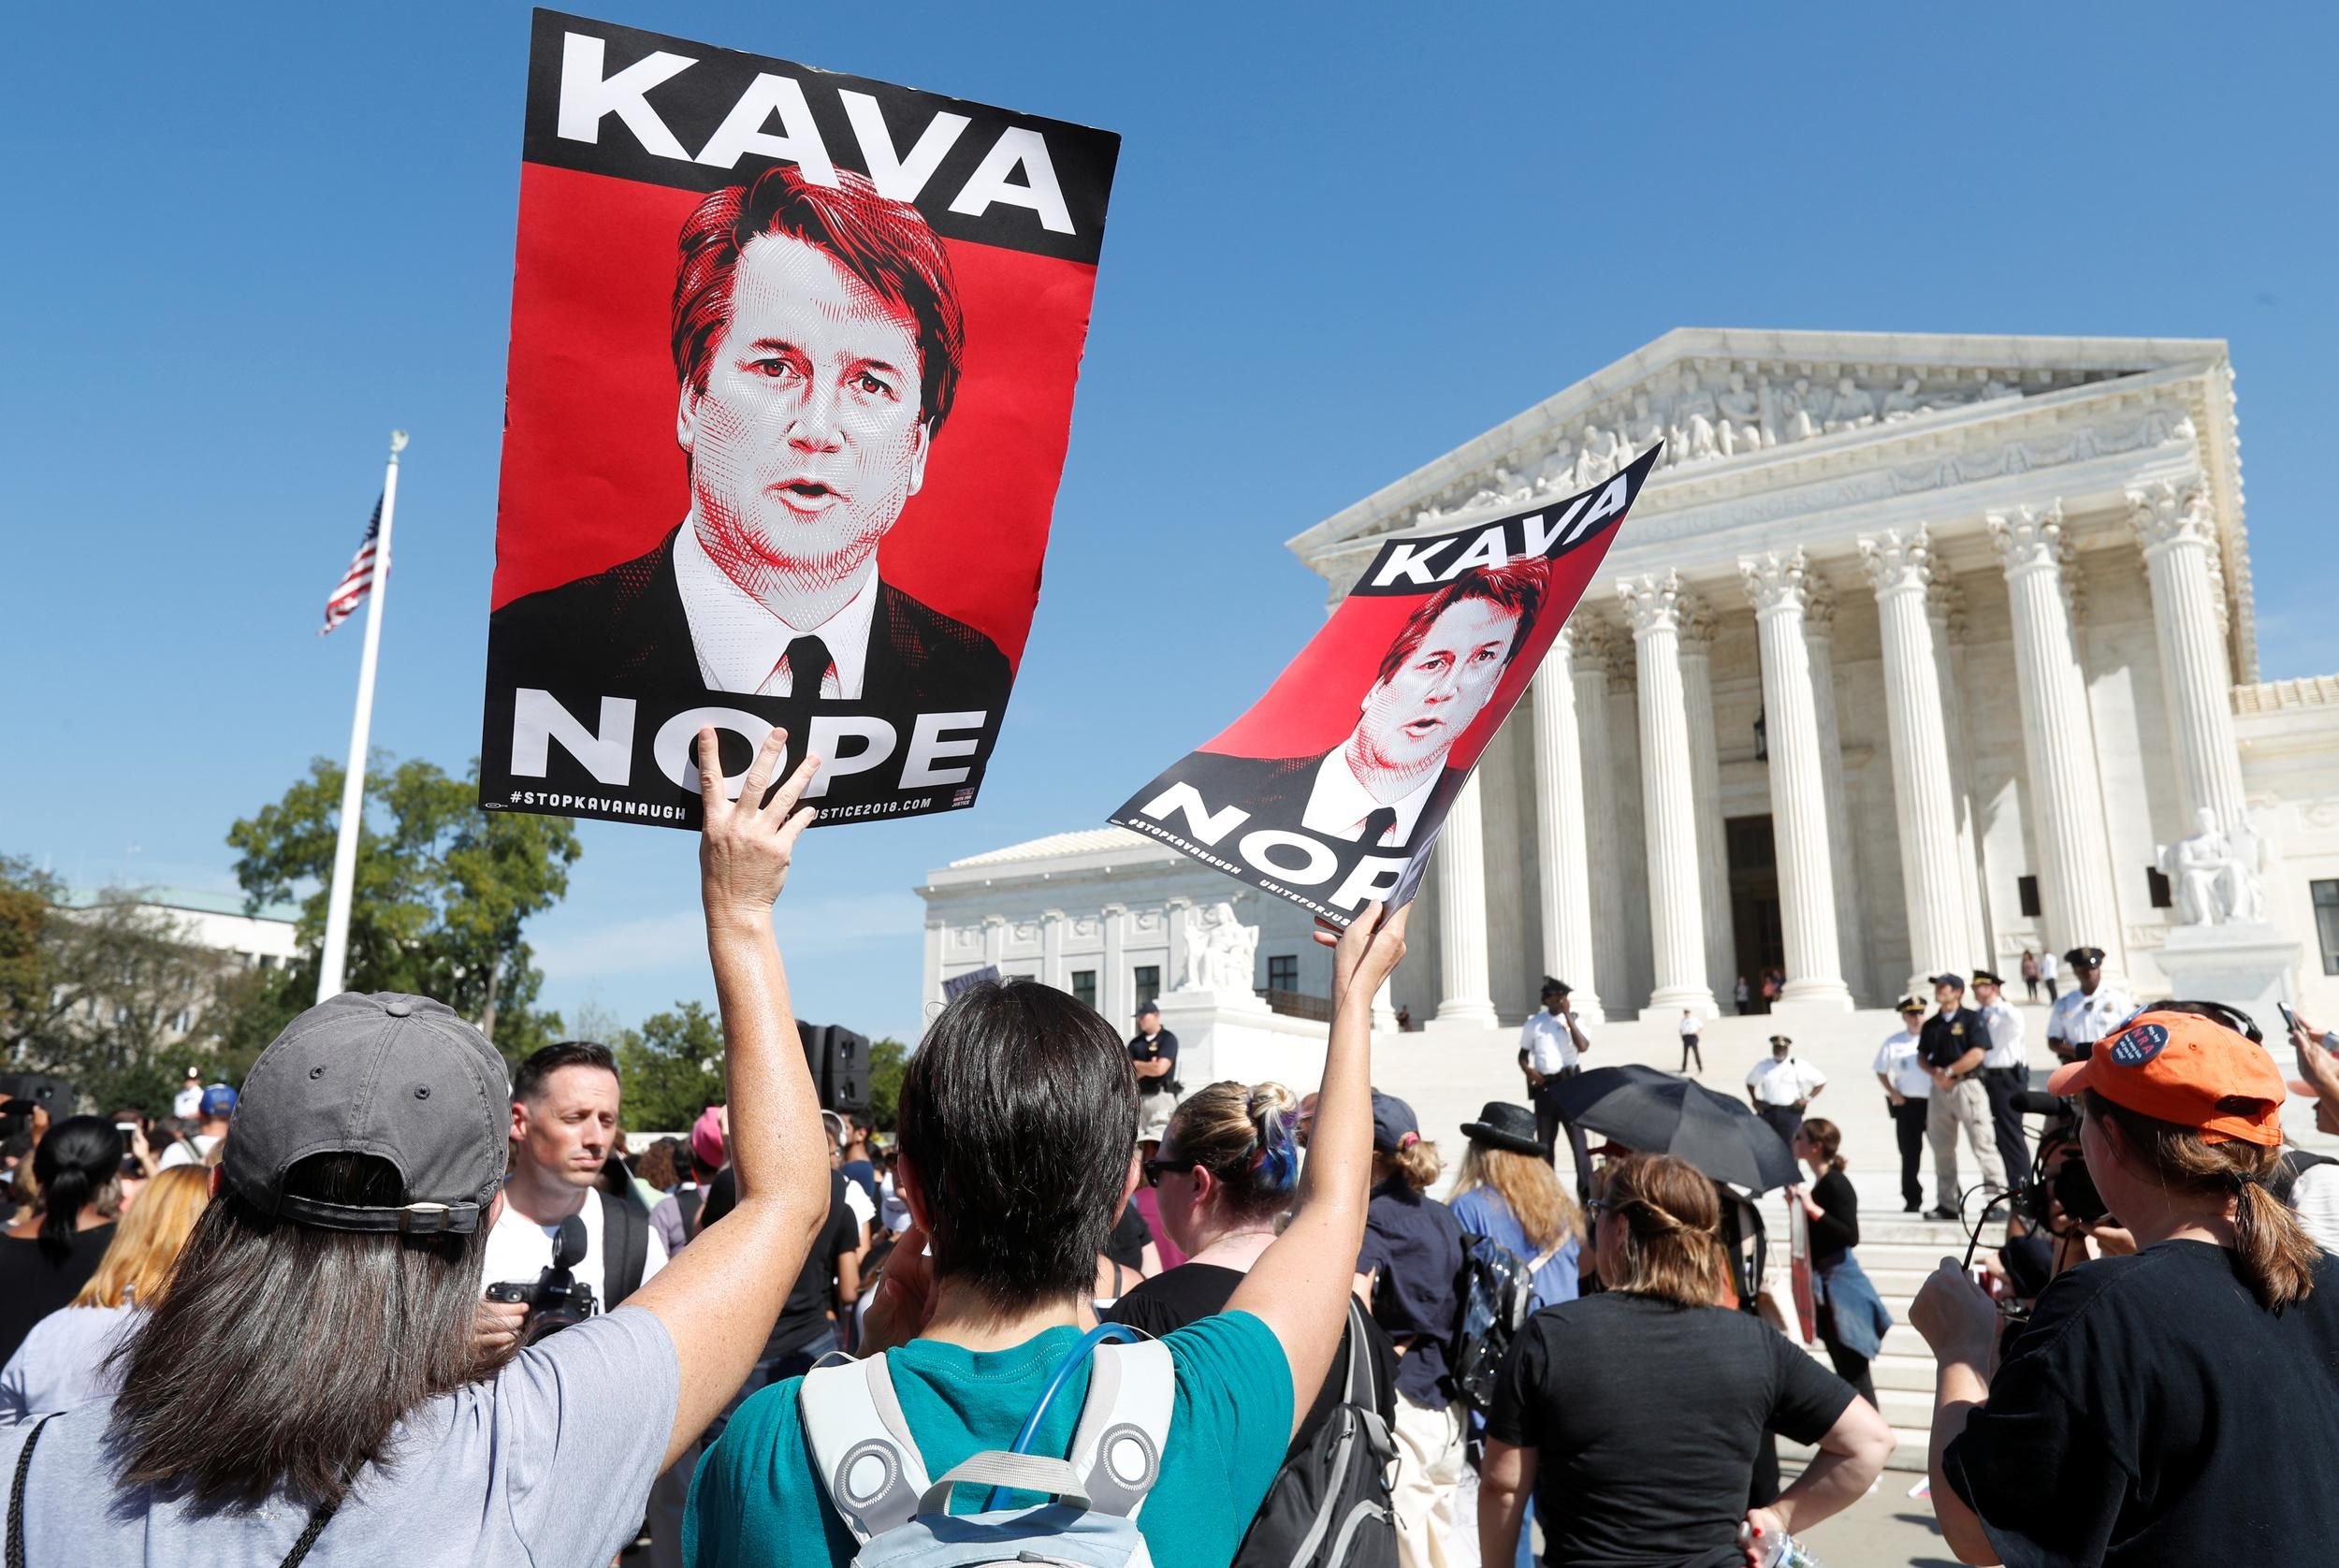 Activists hold a protest and rally in opposition to U.S. Supreme Court nominee Brett Kavanaugh outside the court in Washington, U.S., October 4, 2018. REUTERS/Kevin Lamarque